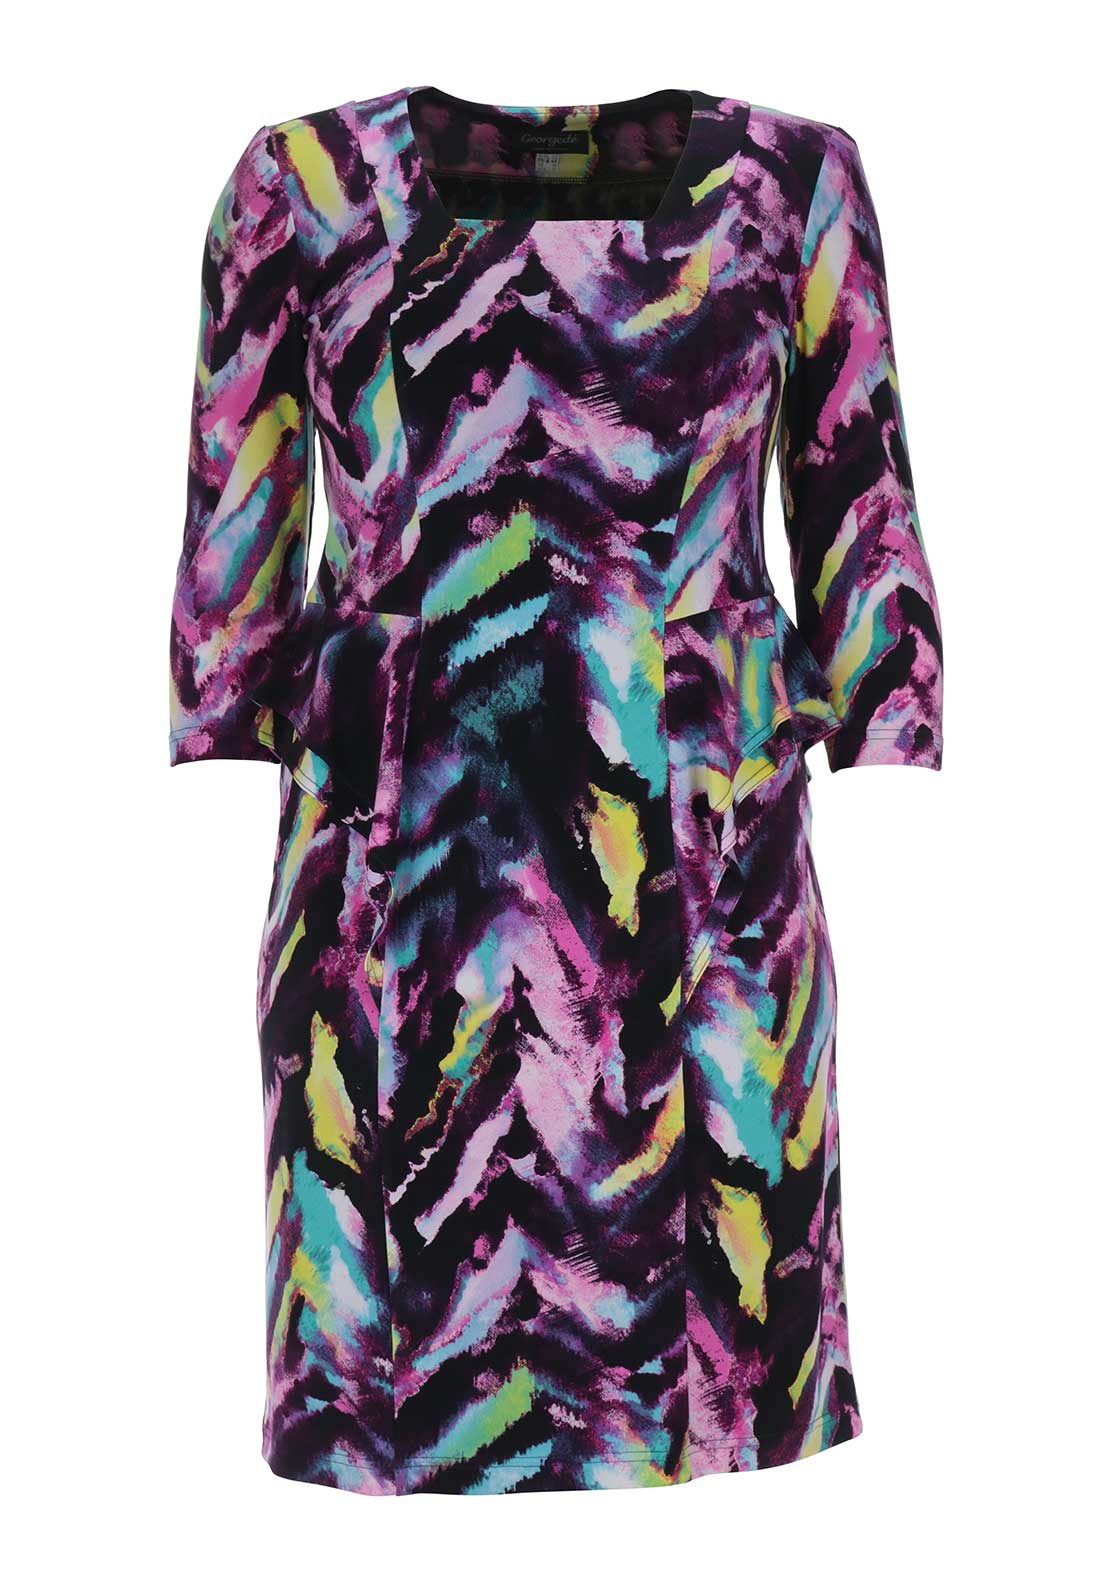 Georgede Abstract Print Jersey Dress, Purple Multi